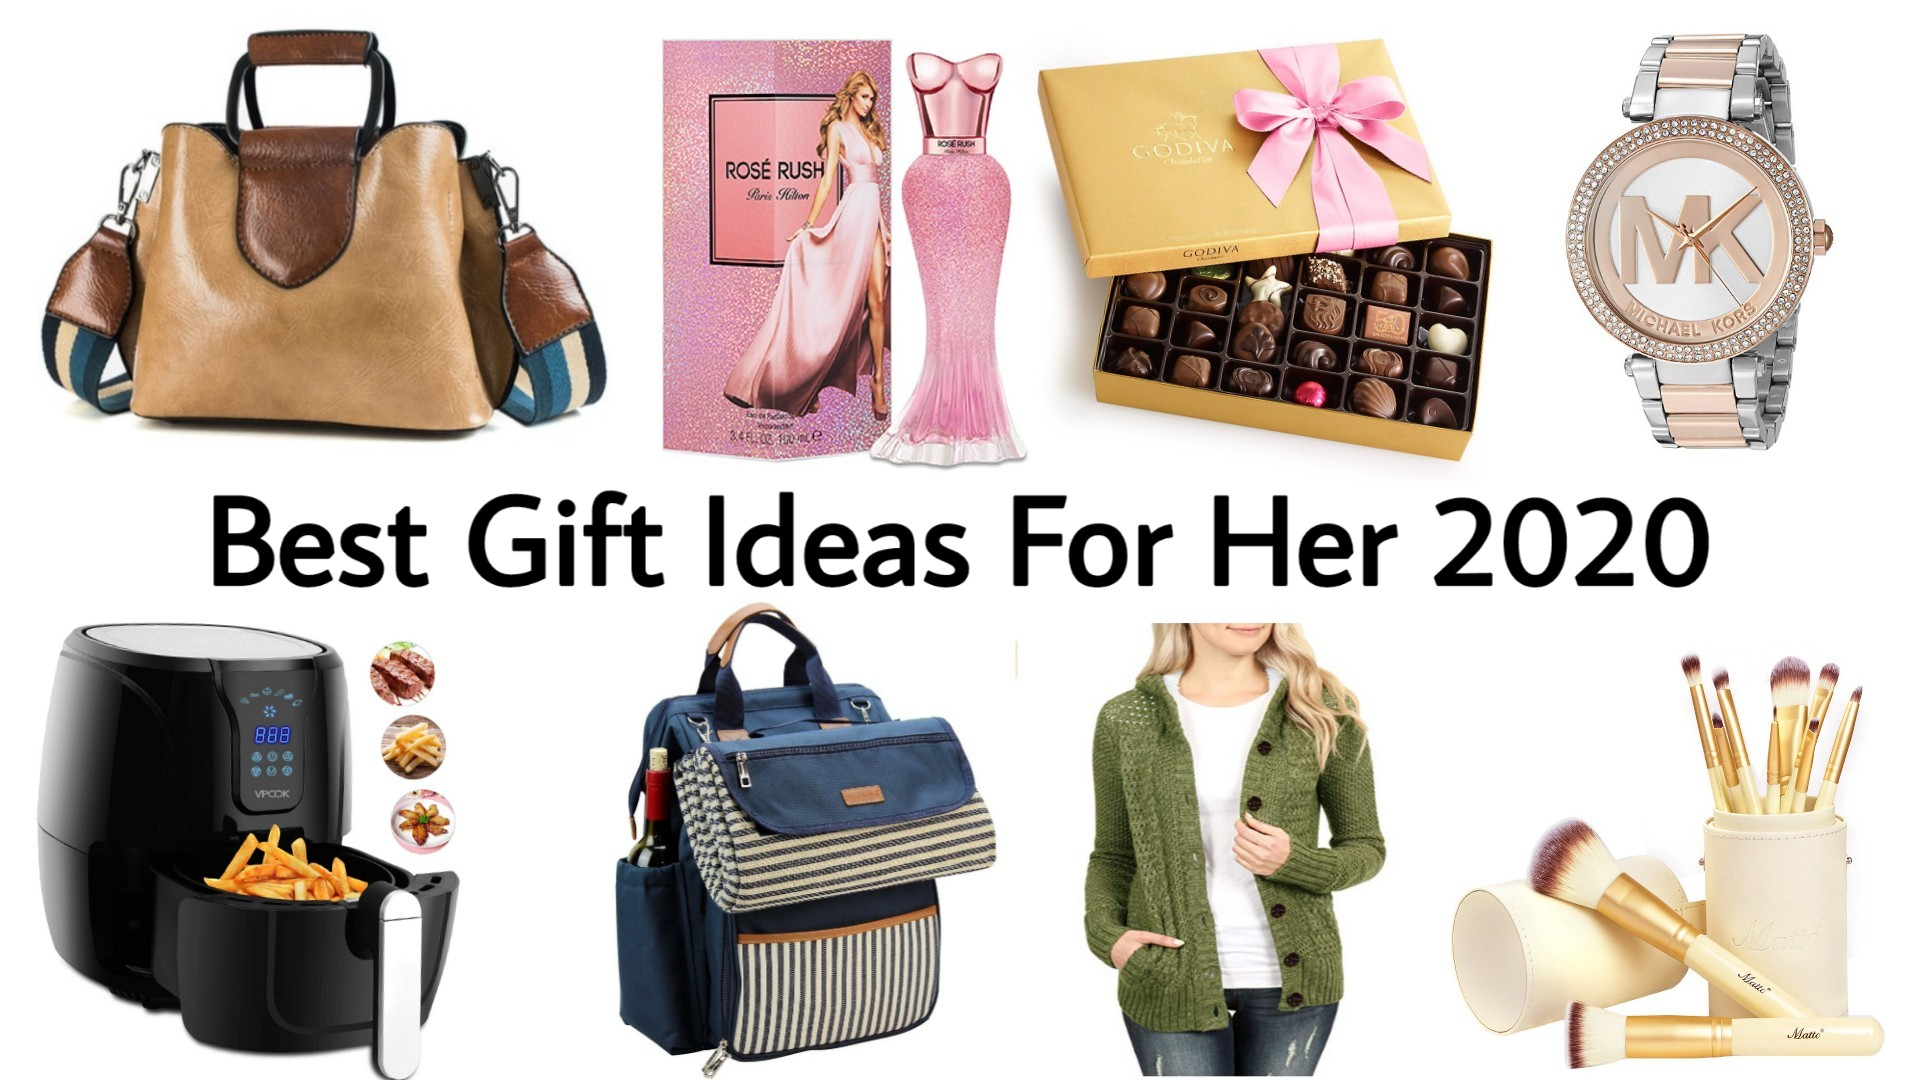 Best Christmas Gifts for Her 2020 | Best Birthday Gifts for Wife 2020